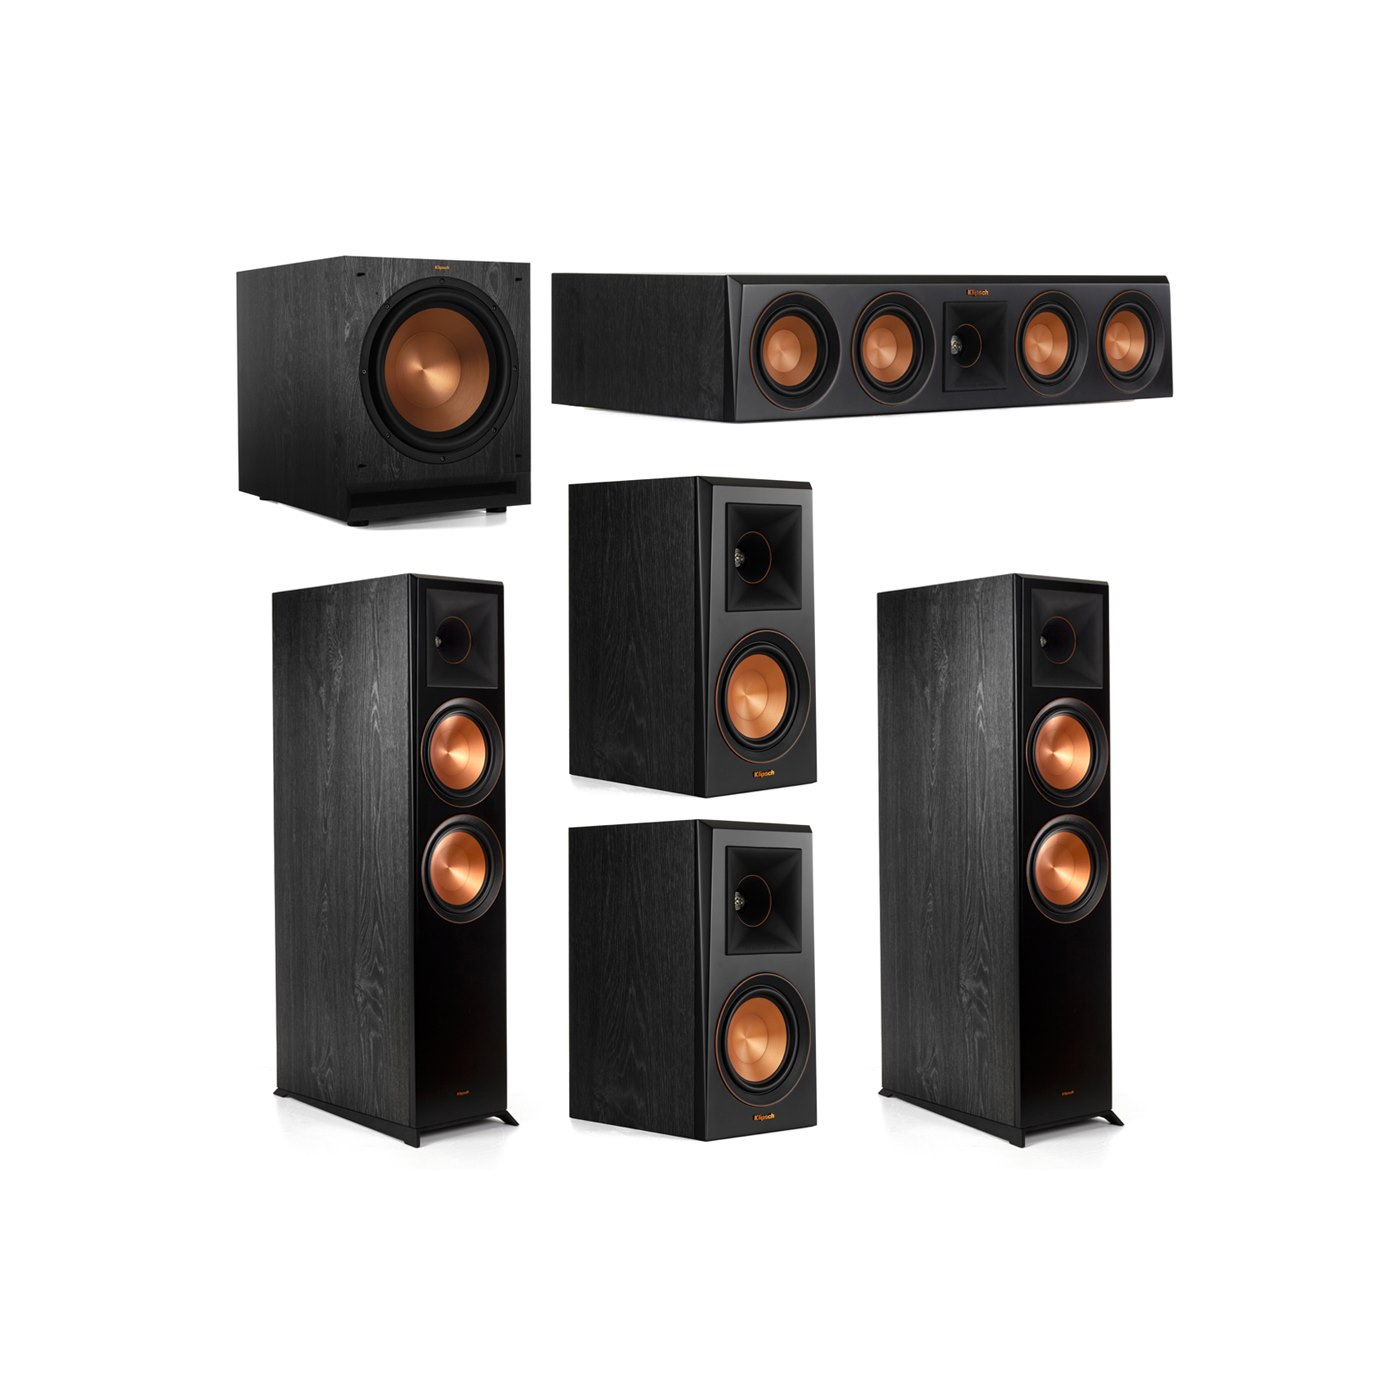 Klipsch 5.1.2 System - 2 RP-8060FA Dolby Atmos Speakers, 1 RP-404C, 2 RP-500M Speakers, 1 SPL-120